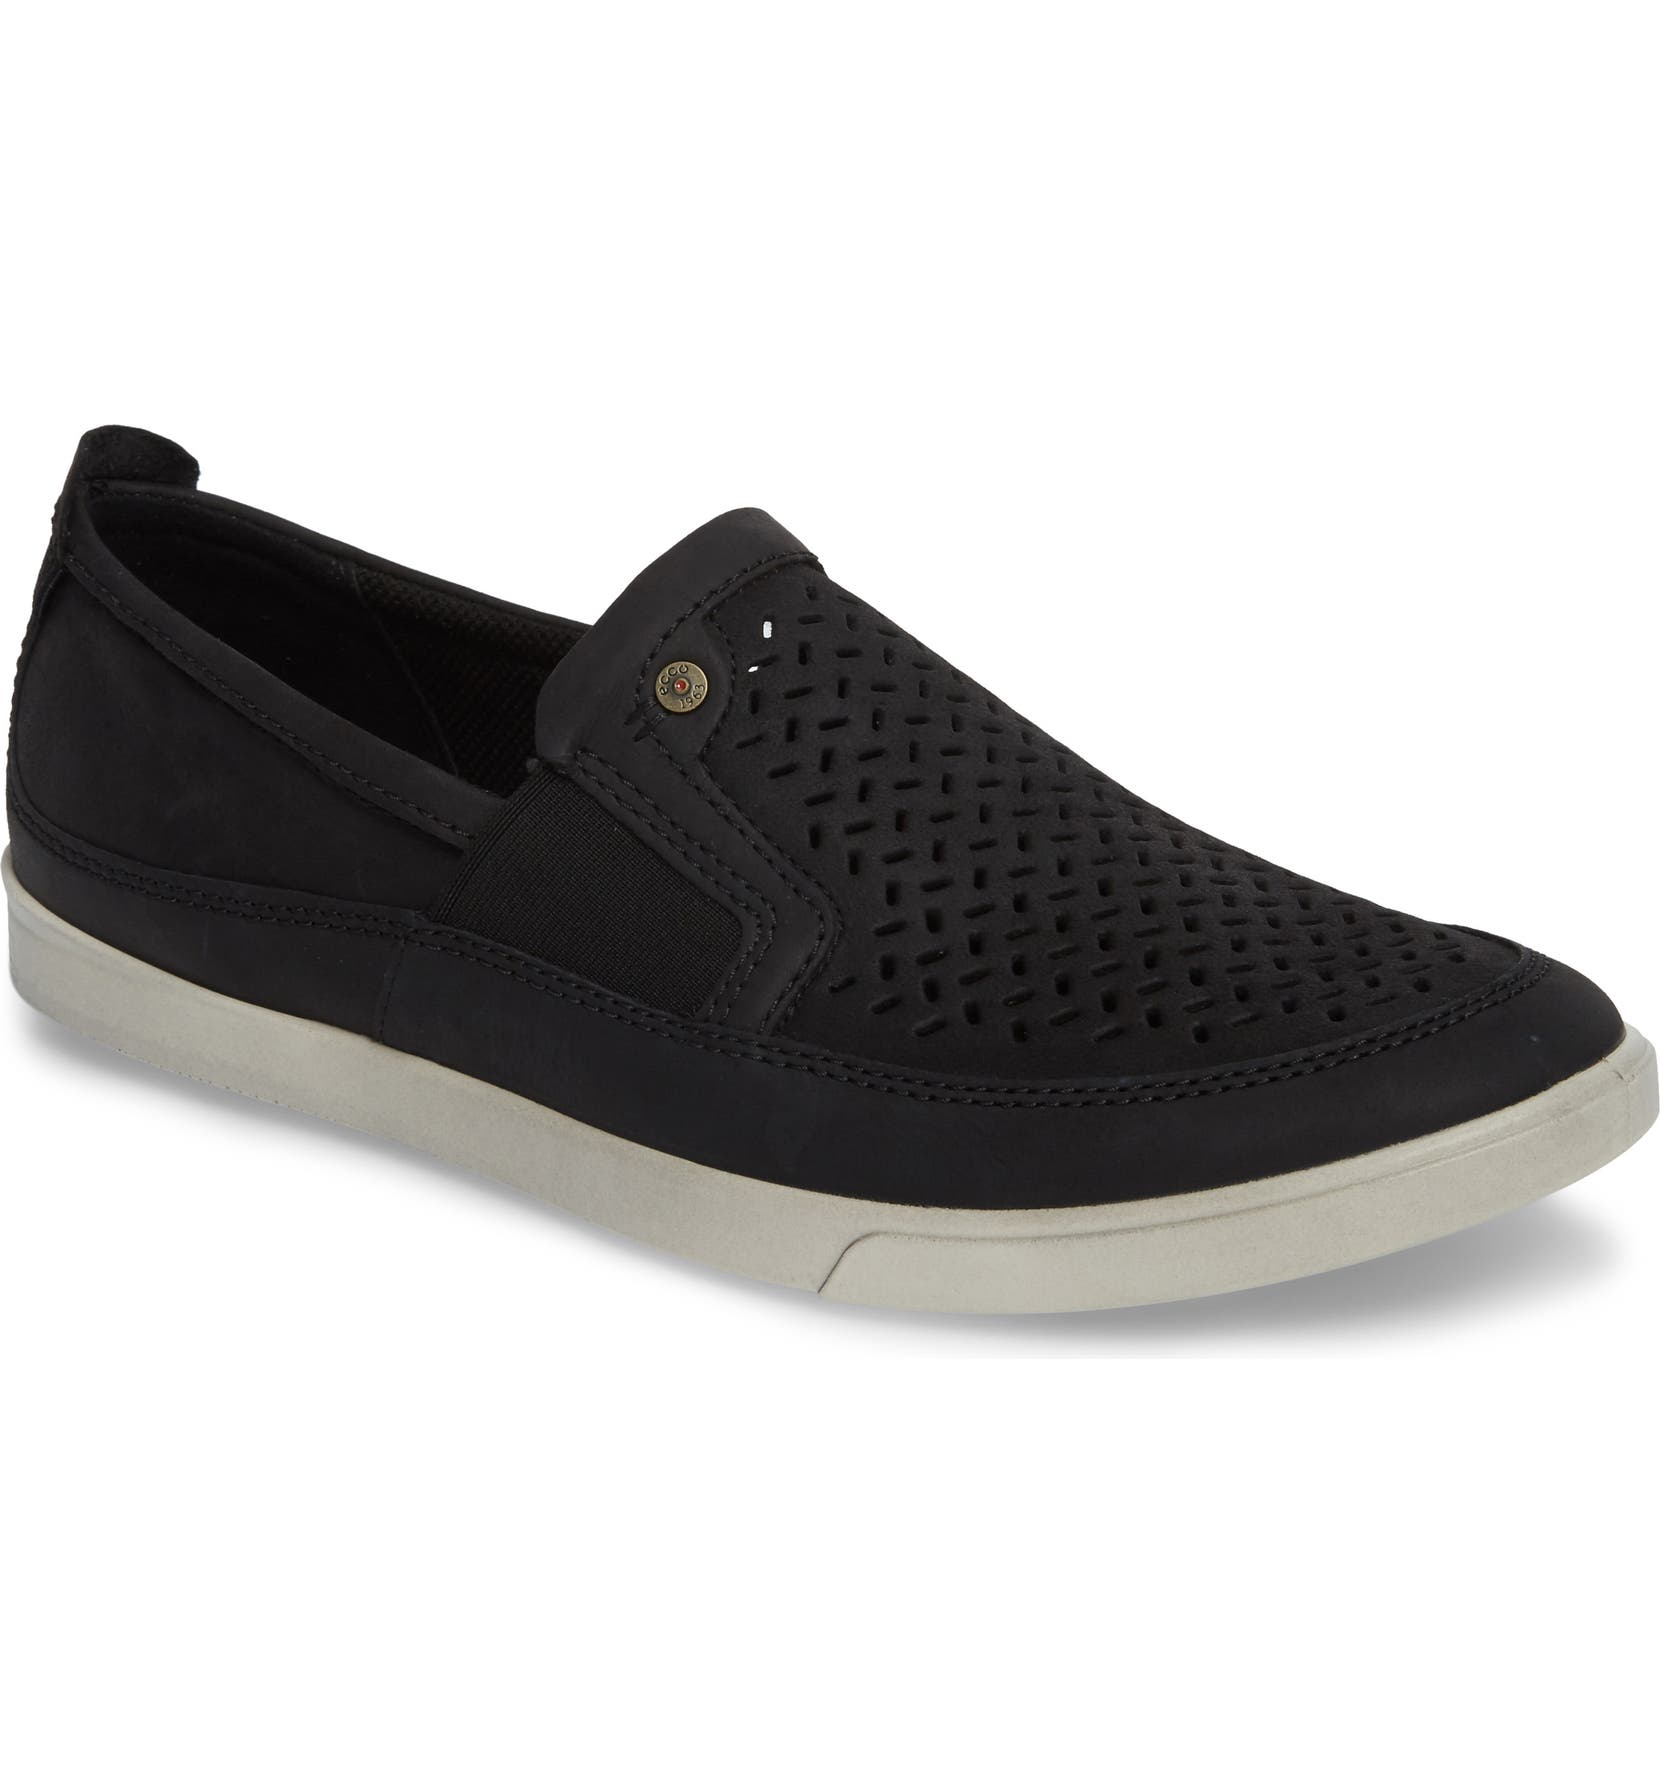 a46c240de4 'Collin' Perforated Slip On Sneaker